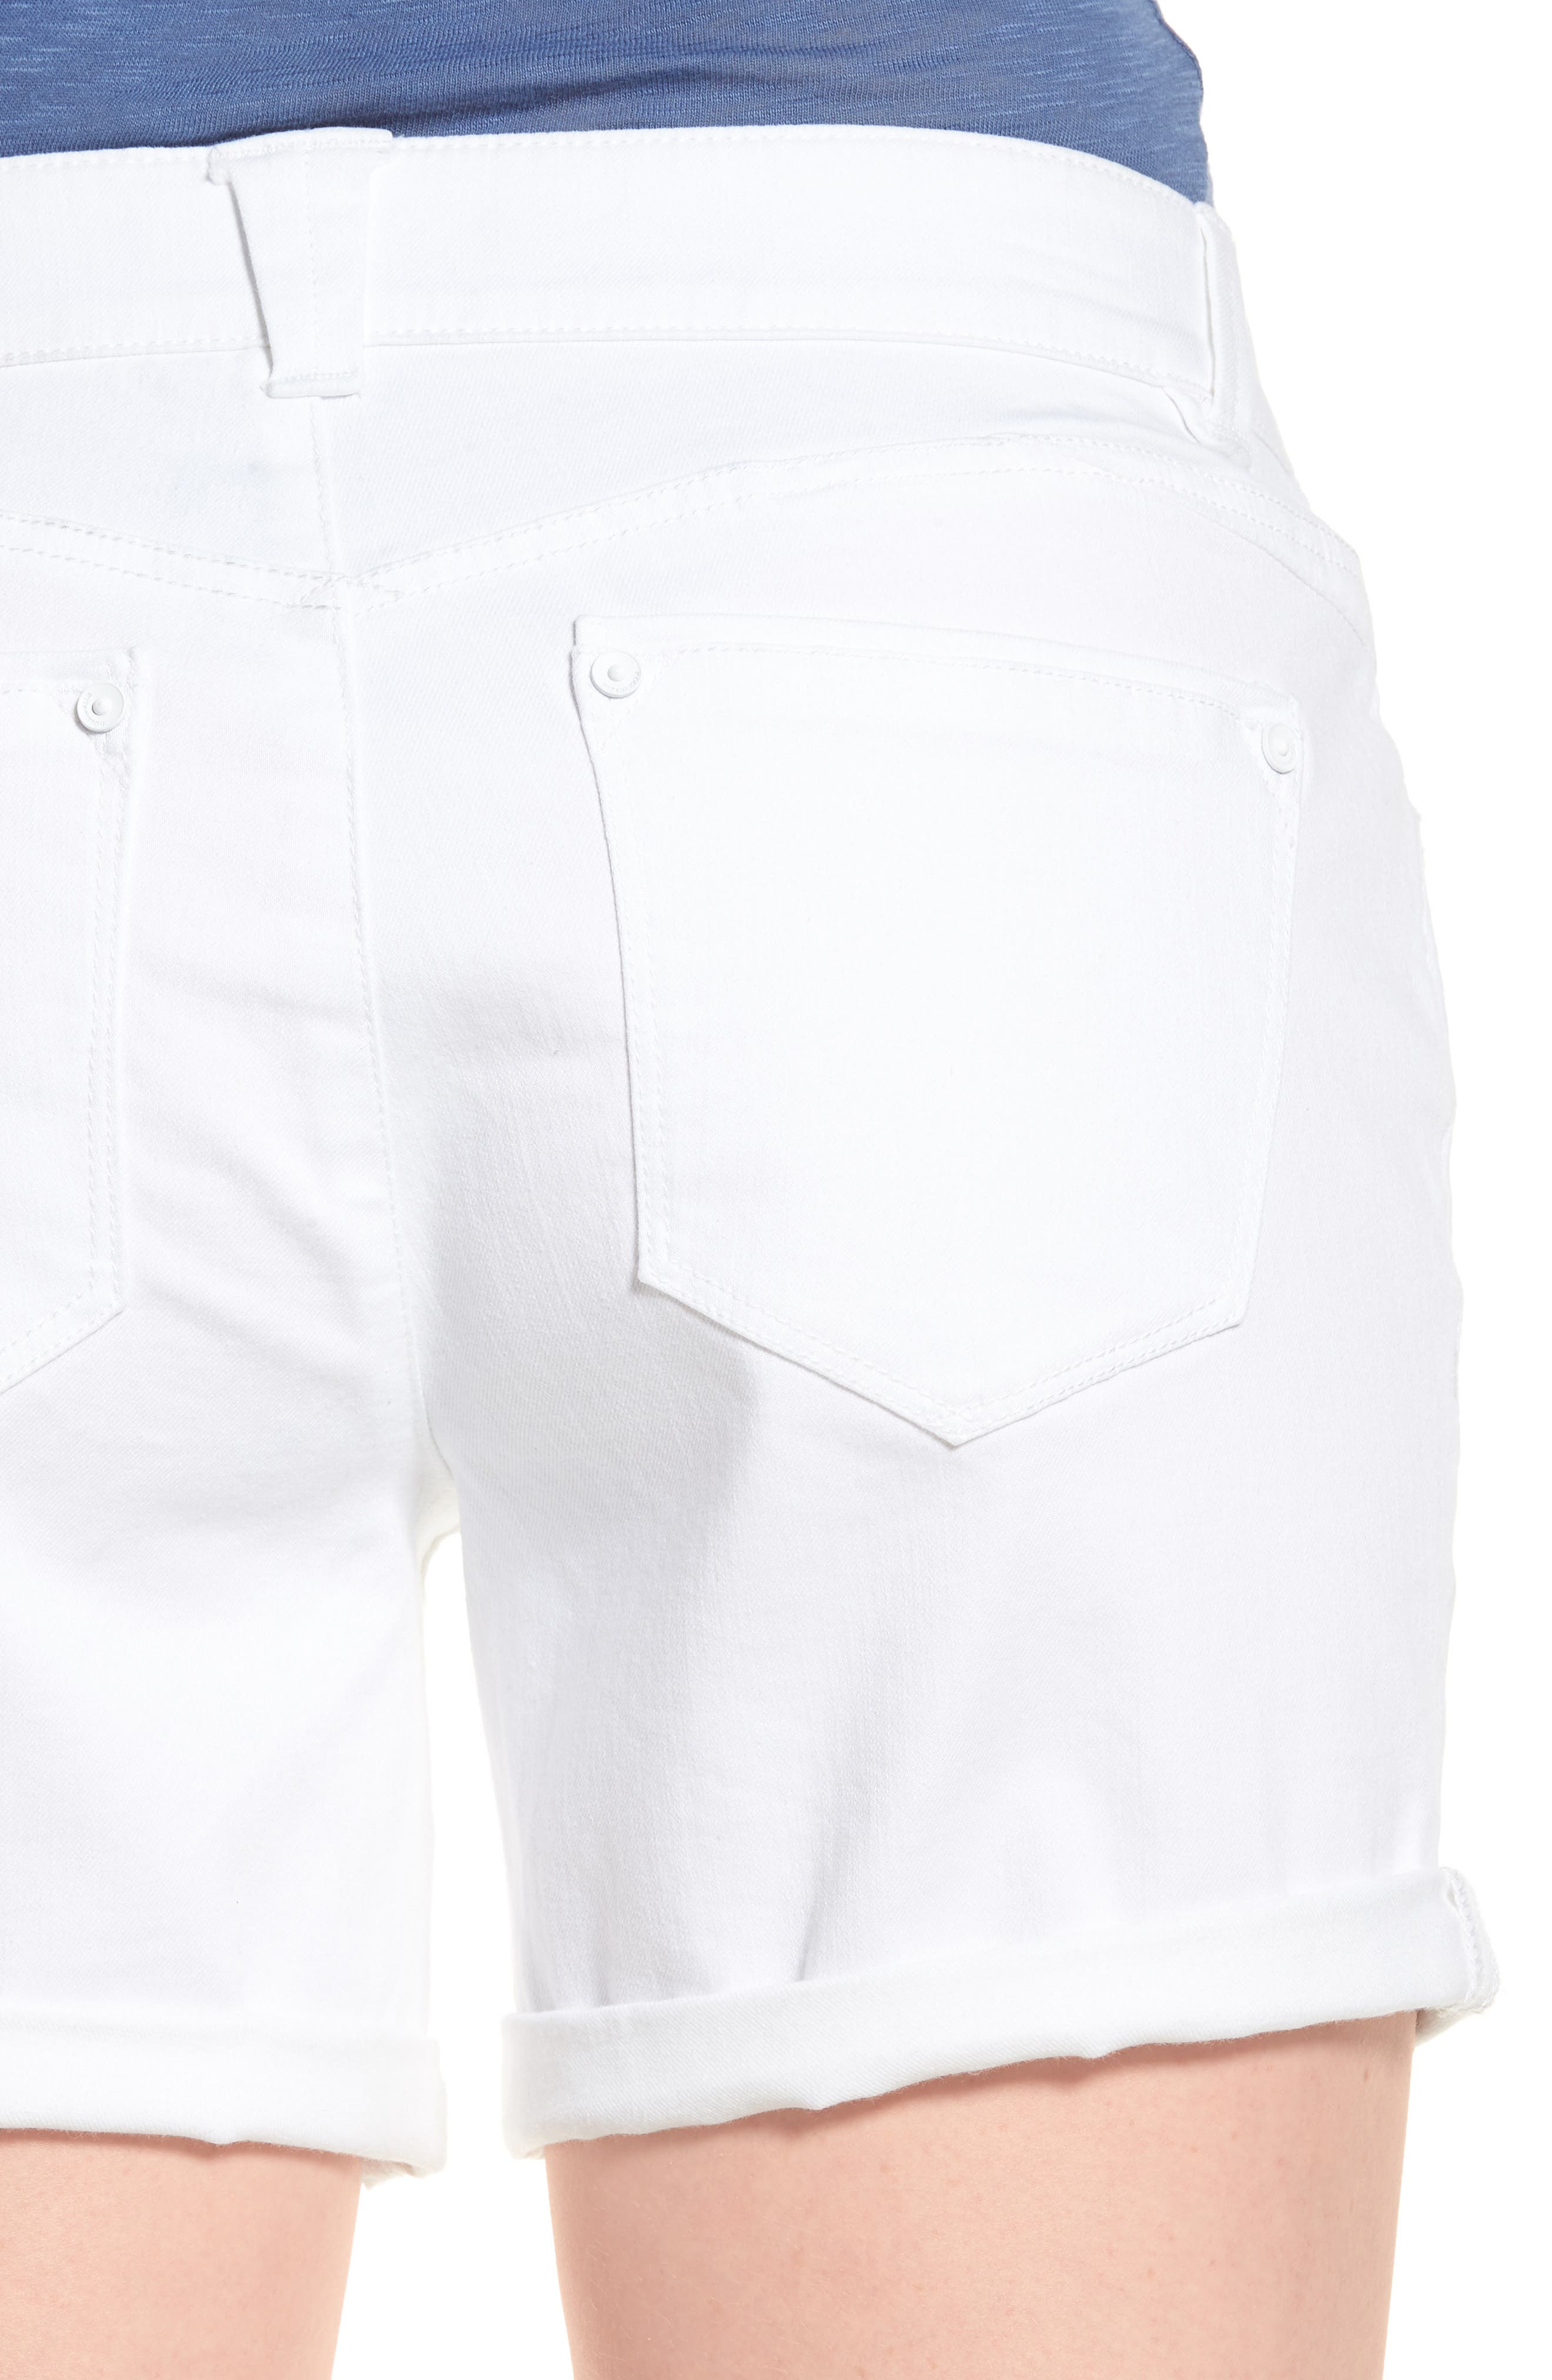 Ab-solution Cuffed White Shorts,                             Alternate thumbnail 4, color,                             Optic White